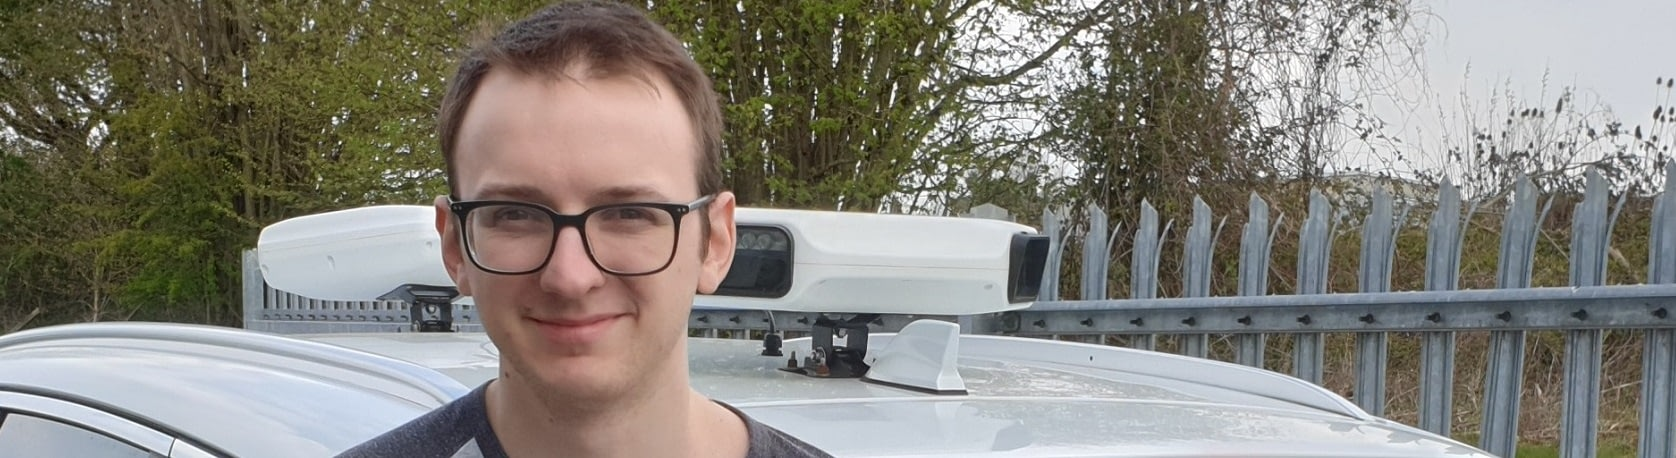 Videalert expands mobile enforcement vehicle operations with new technical appointment